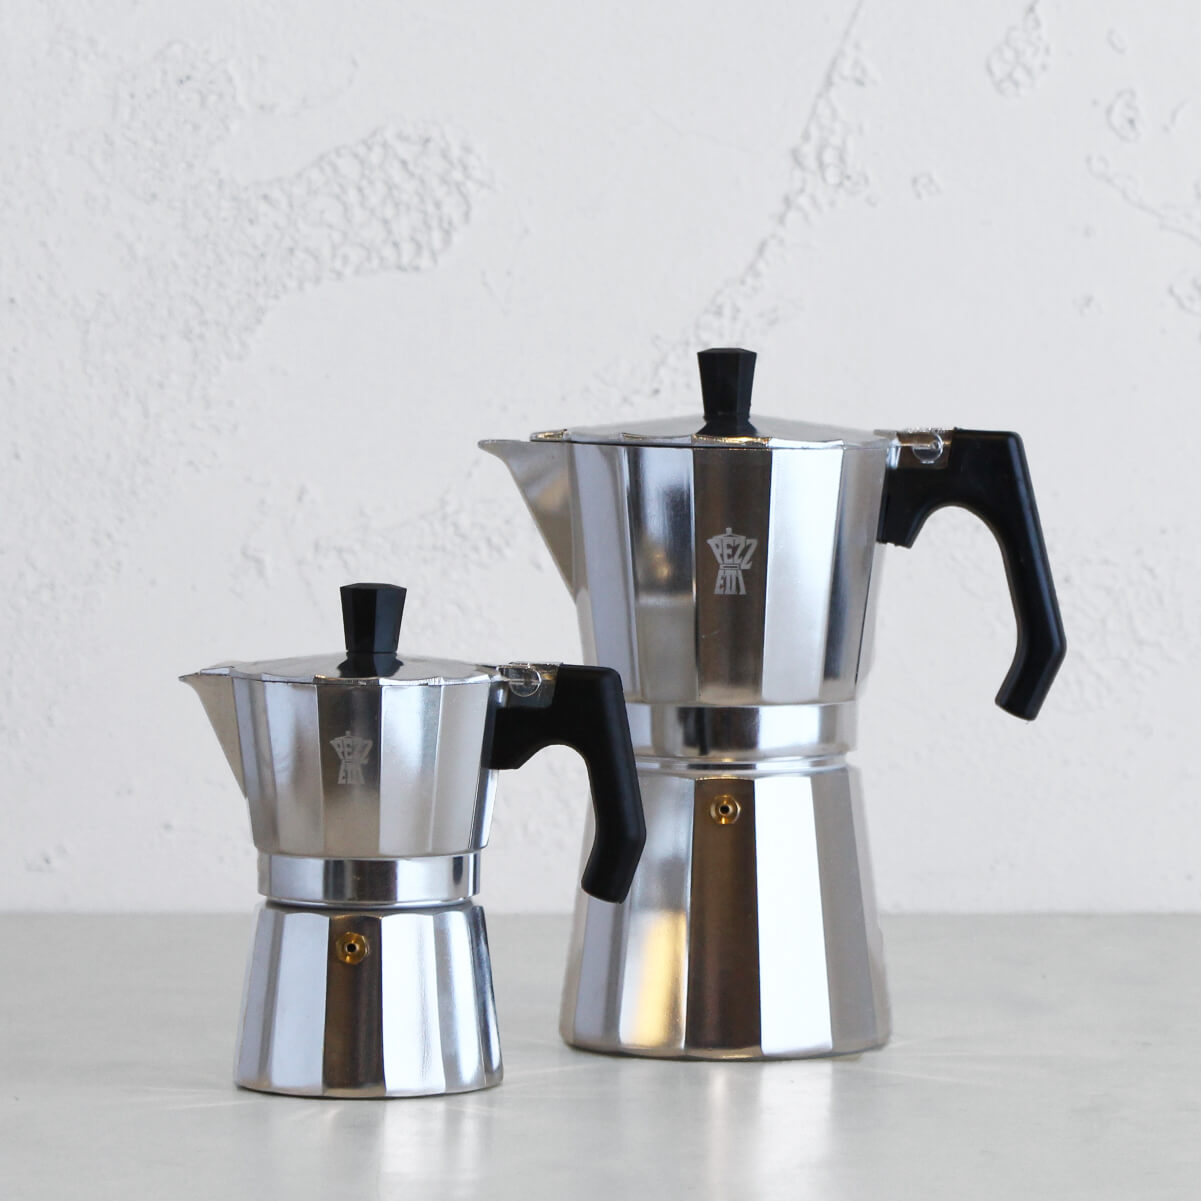 PEZZETTI LUXEXPRESS ITALIAN COFFEE MAKER  |  3 + 9 CUP PACKAGE  |  STEEL